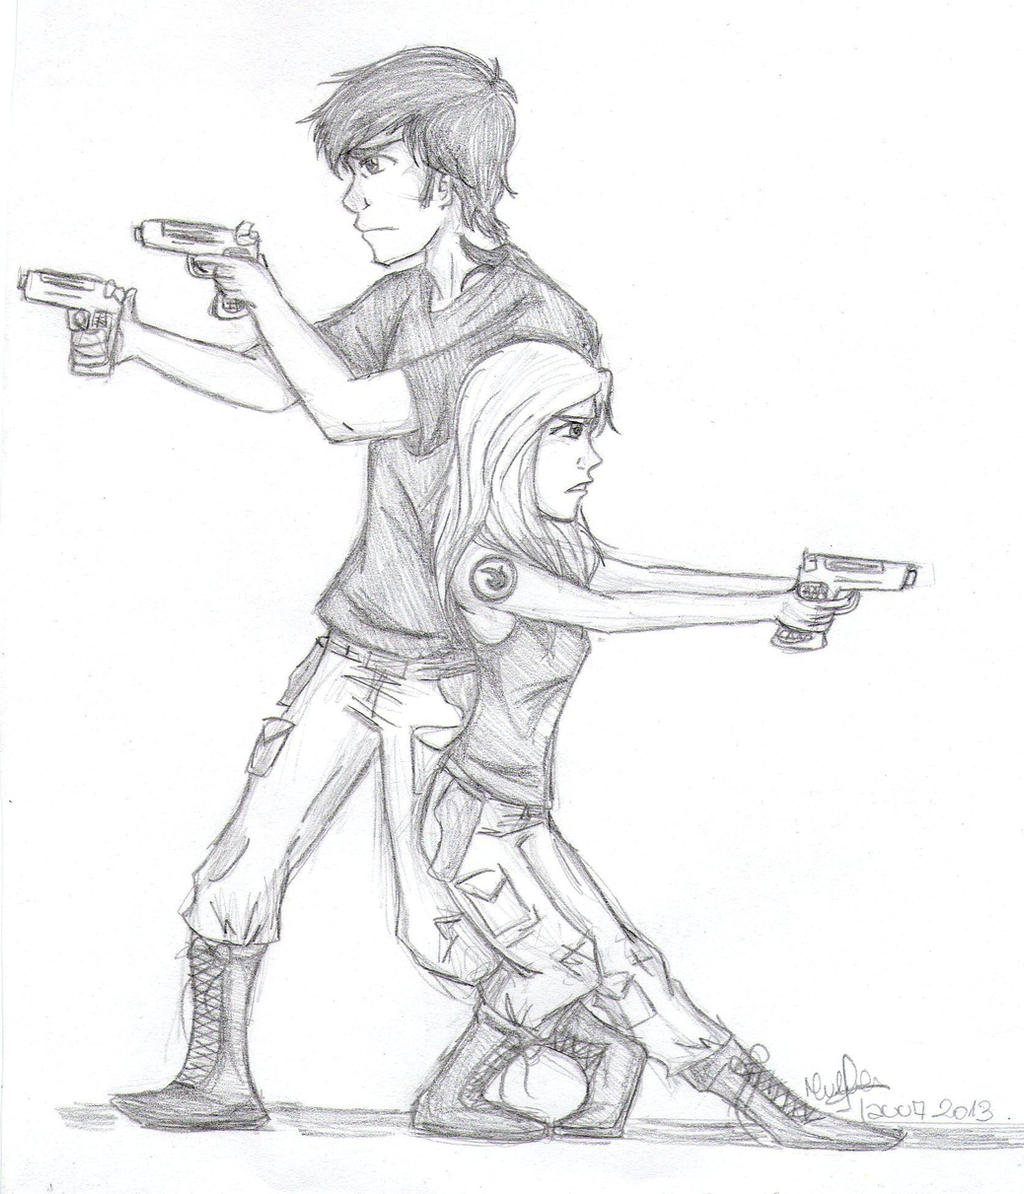 Tris and Four by lauu7 on DeviantArt